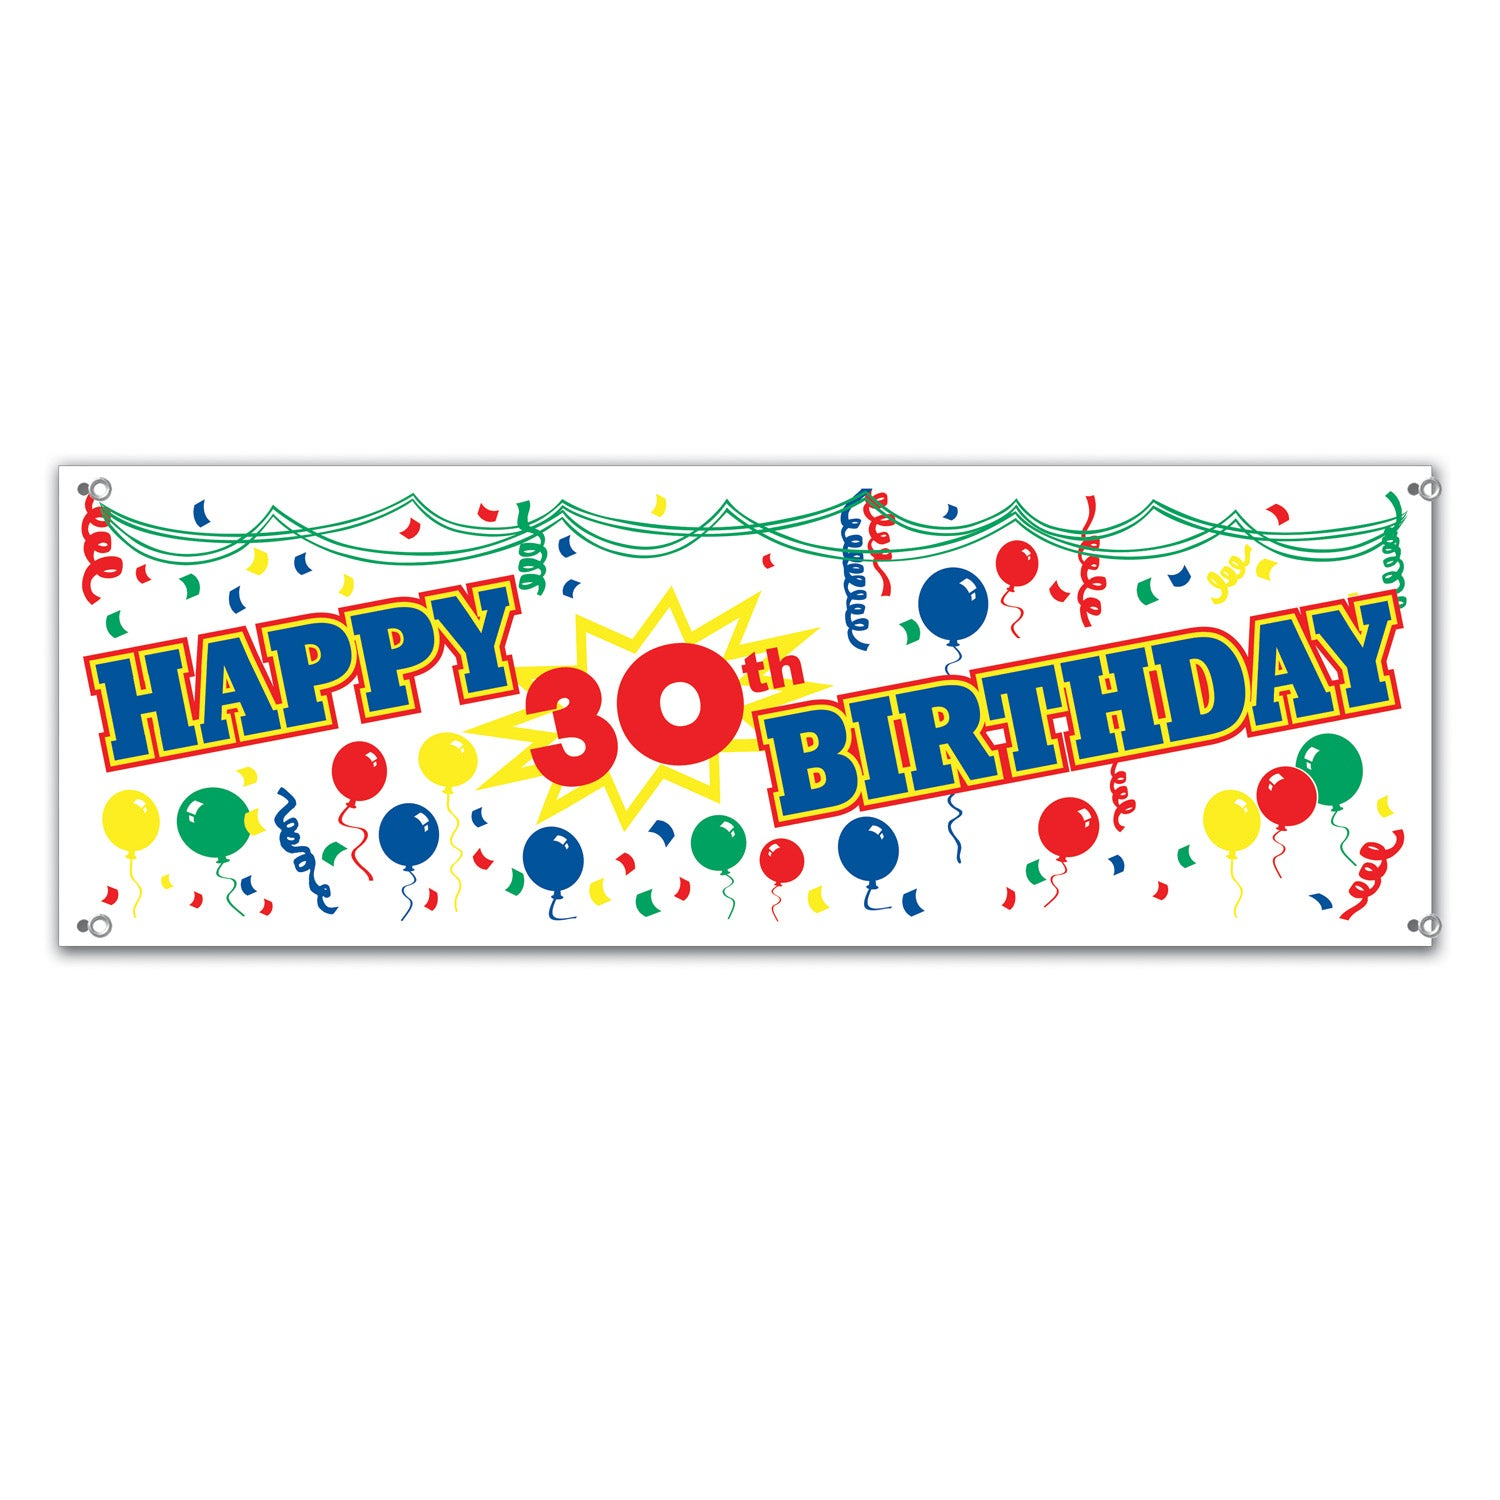 Happy 30th Birthday Sign Banner by Beistle - 30th Birthday Party Decorations